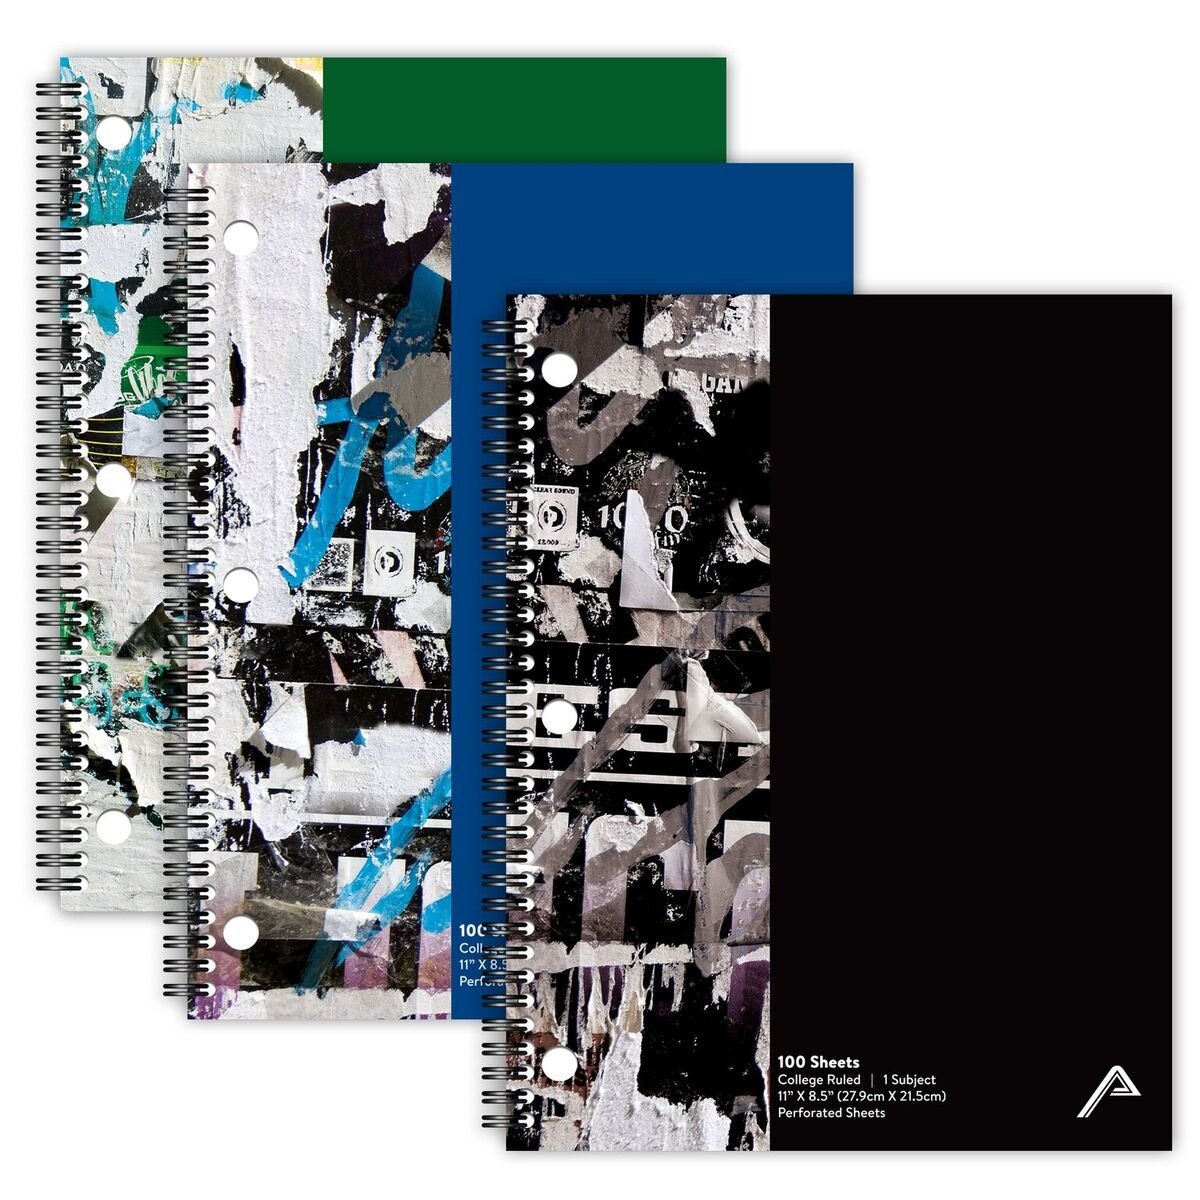 """Viva Activa Creative College Ruled Spiral Notebook, 1 Subject, 100 Pages, 8.5"""" x 11"""", Graffiti Design, 3 Pack (Black, Blue, Green)"""